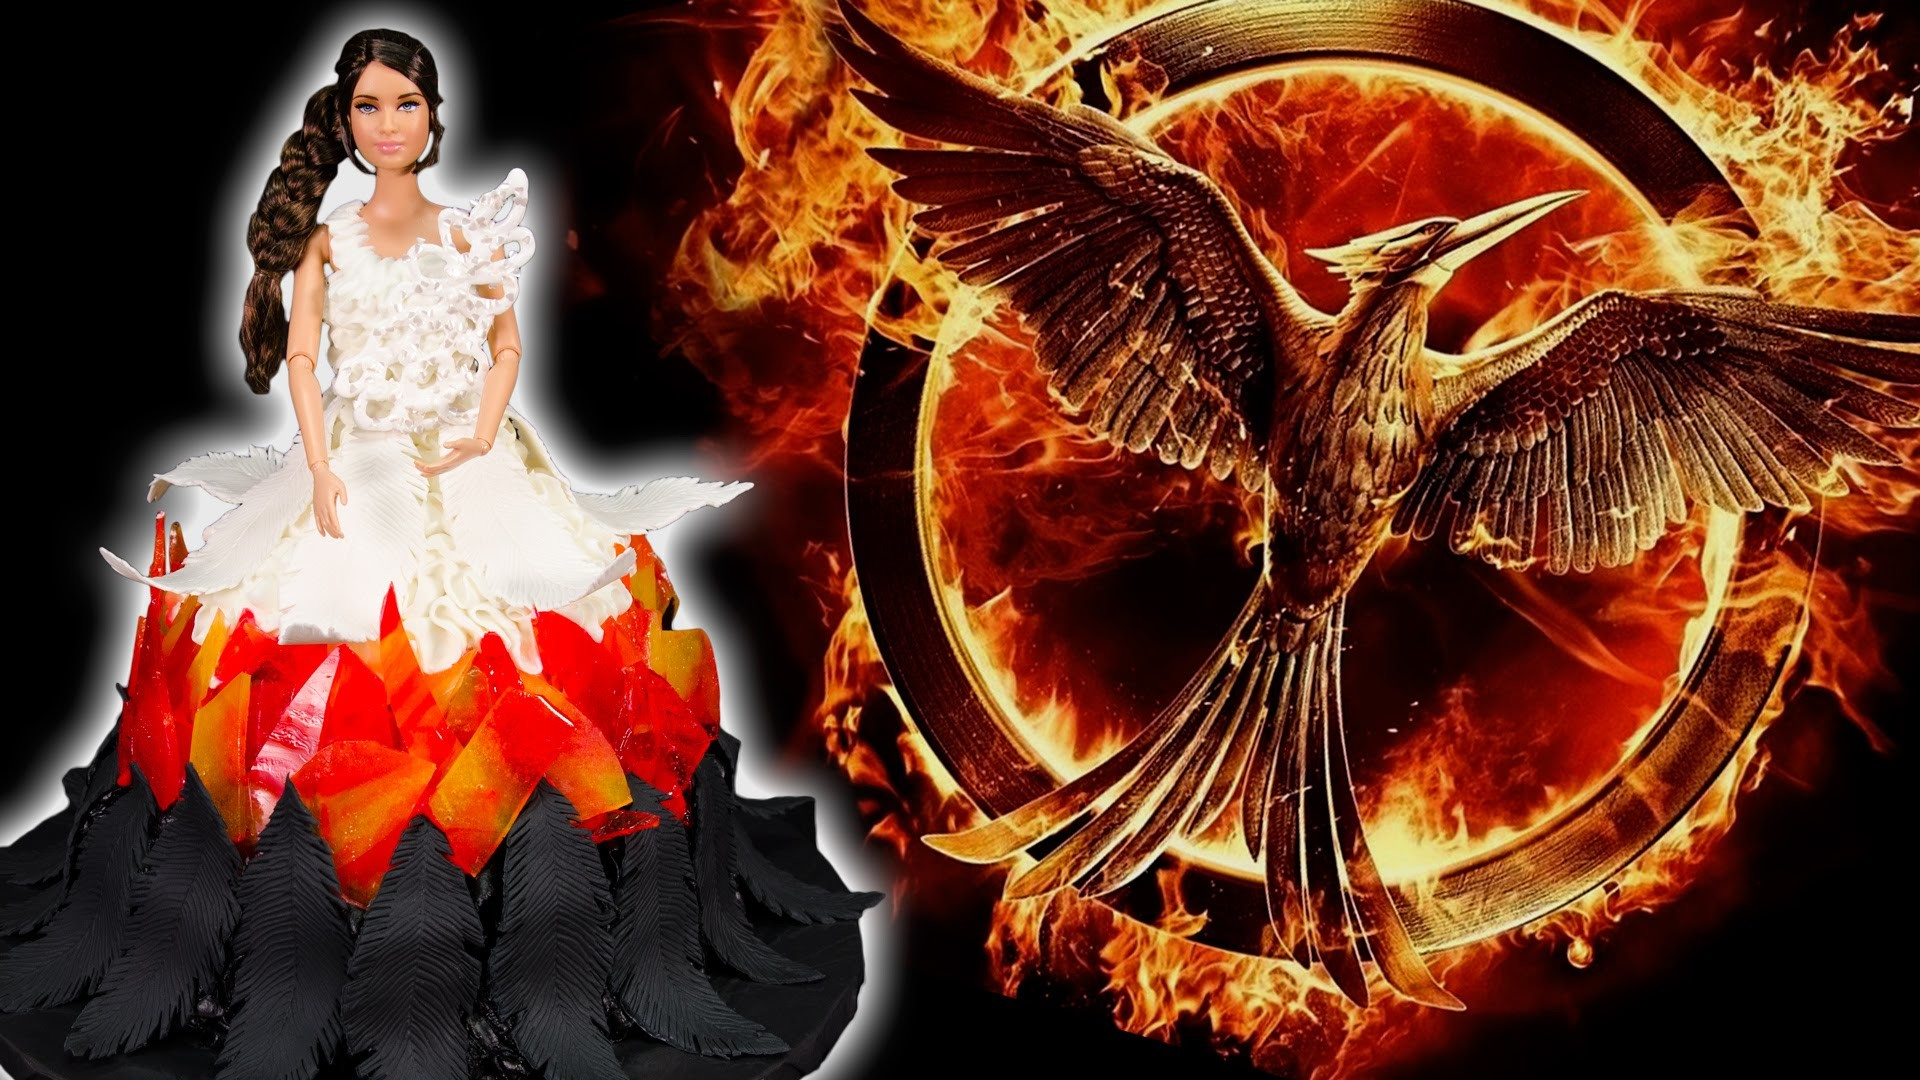 The Hunger Games: Mockingjay Cake (Katniss Wedding Dress Cake) from Cookies Cupcakes and Cardio